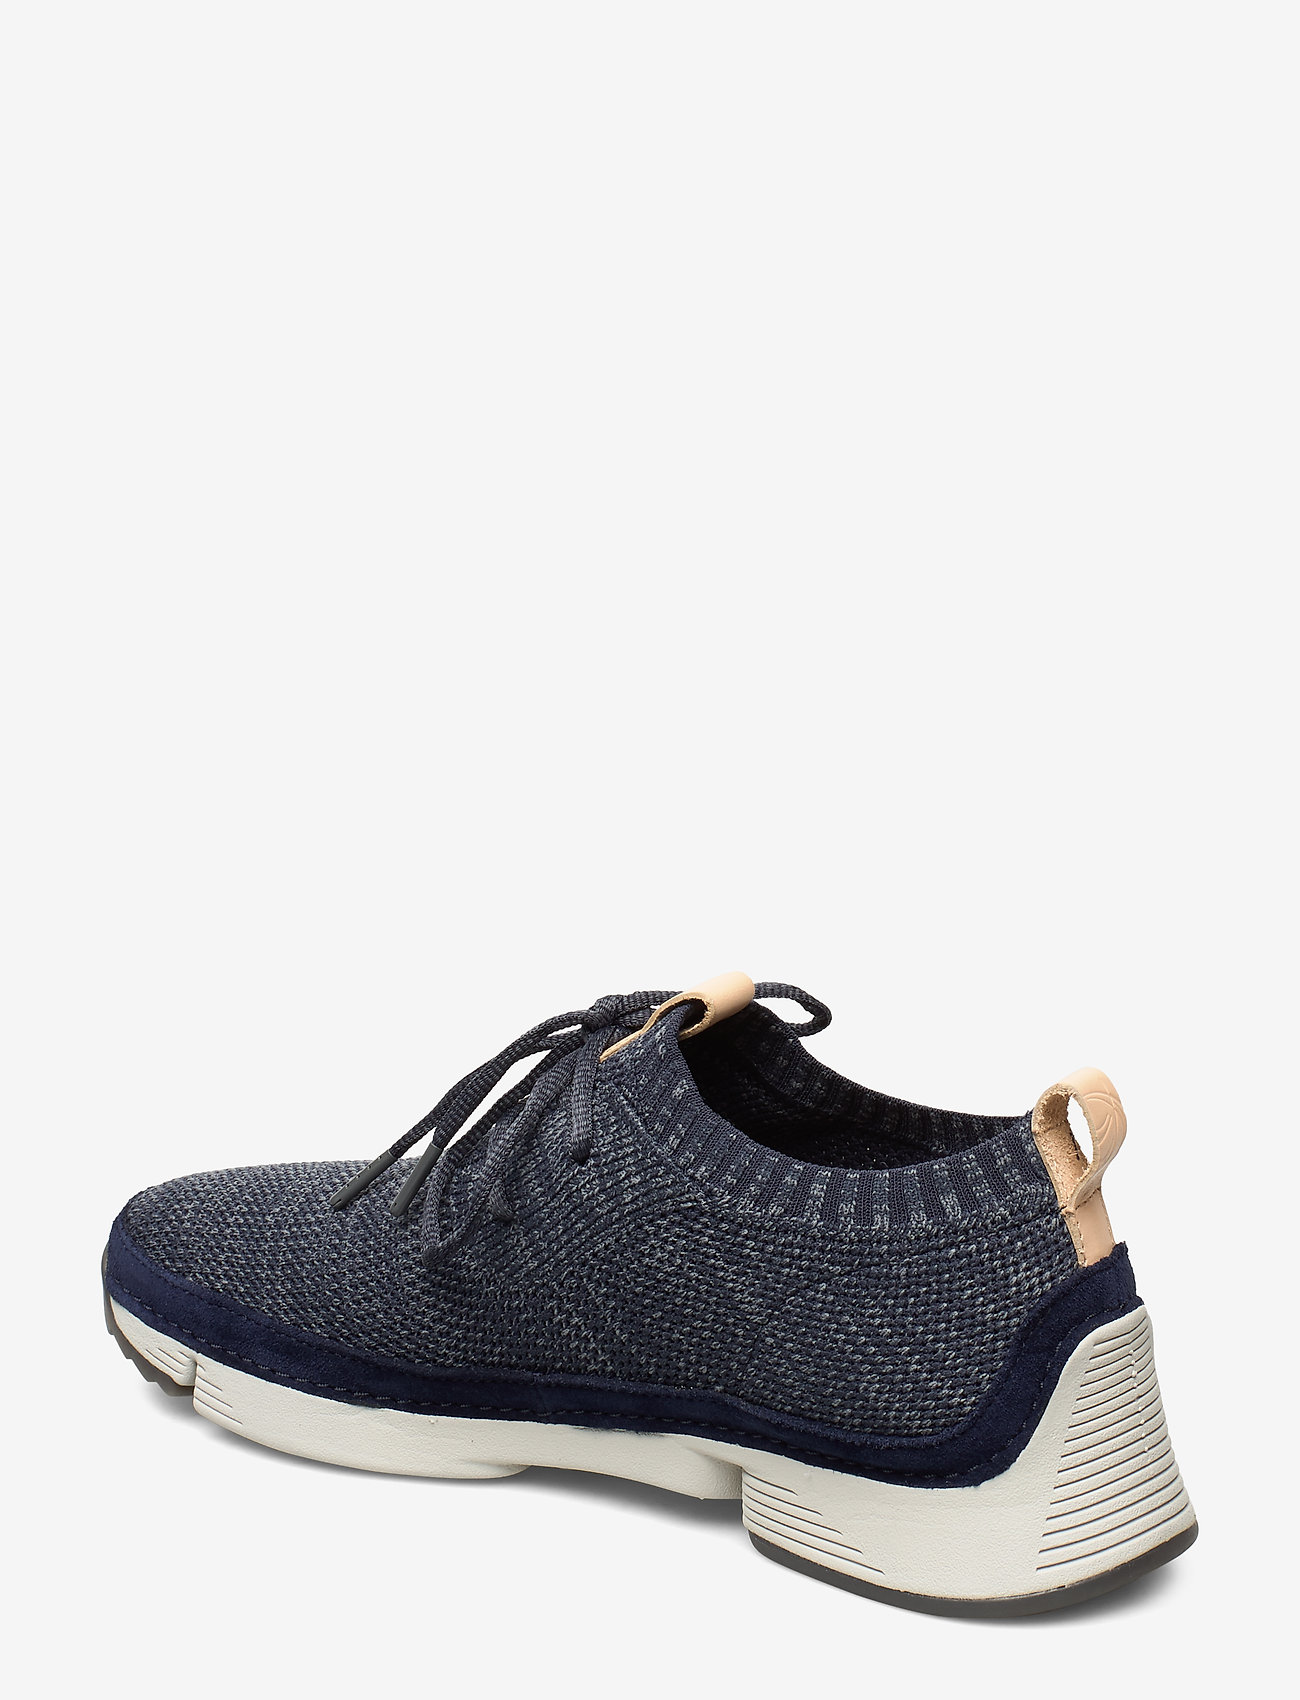 Clarks Tri Native - Sneakers NAVY - Schuhe Billige